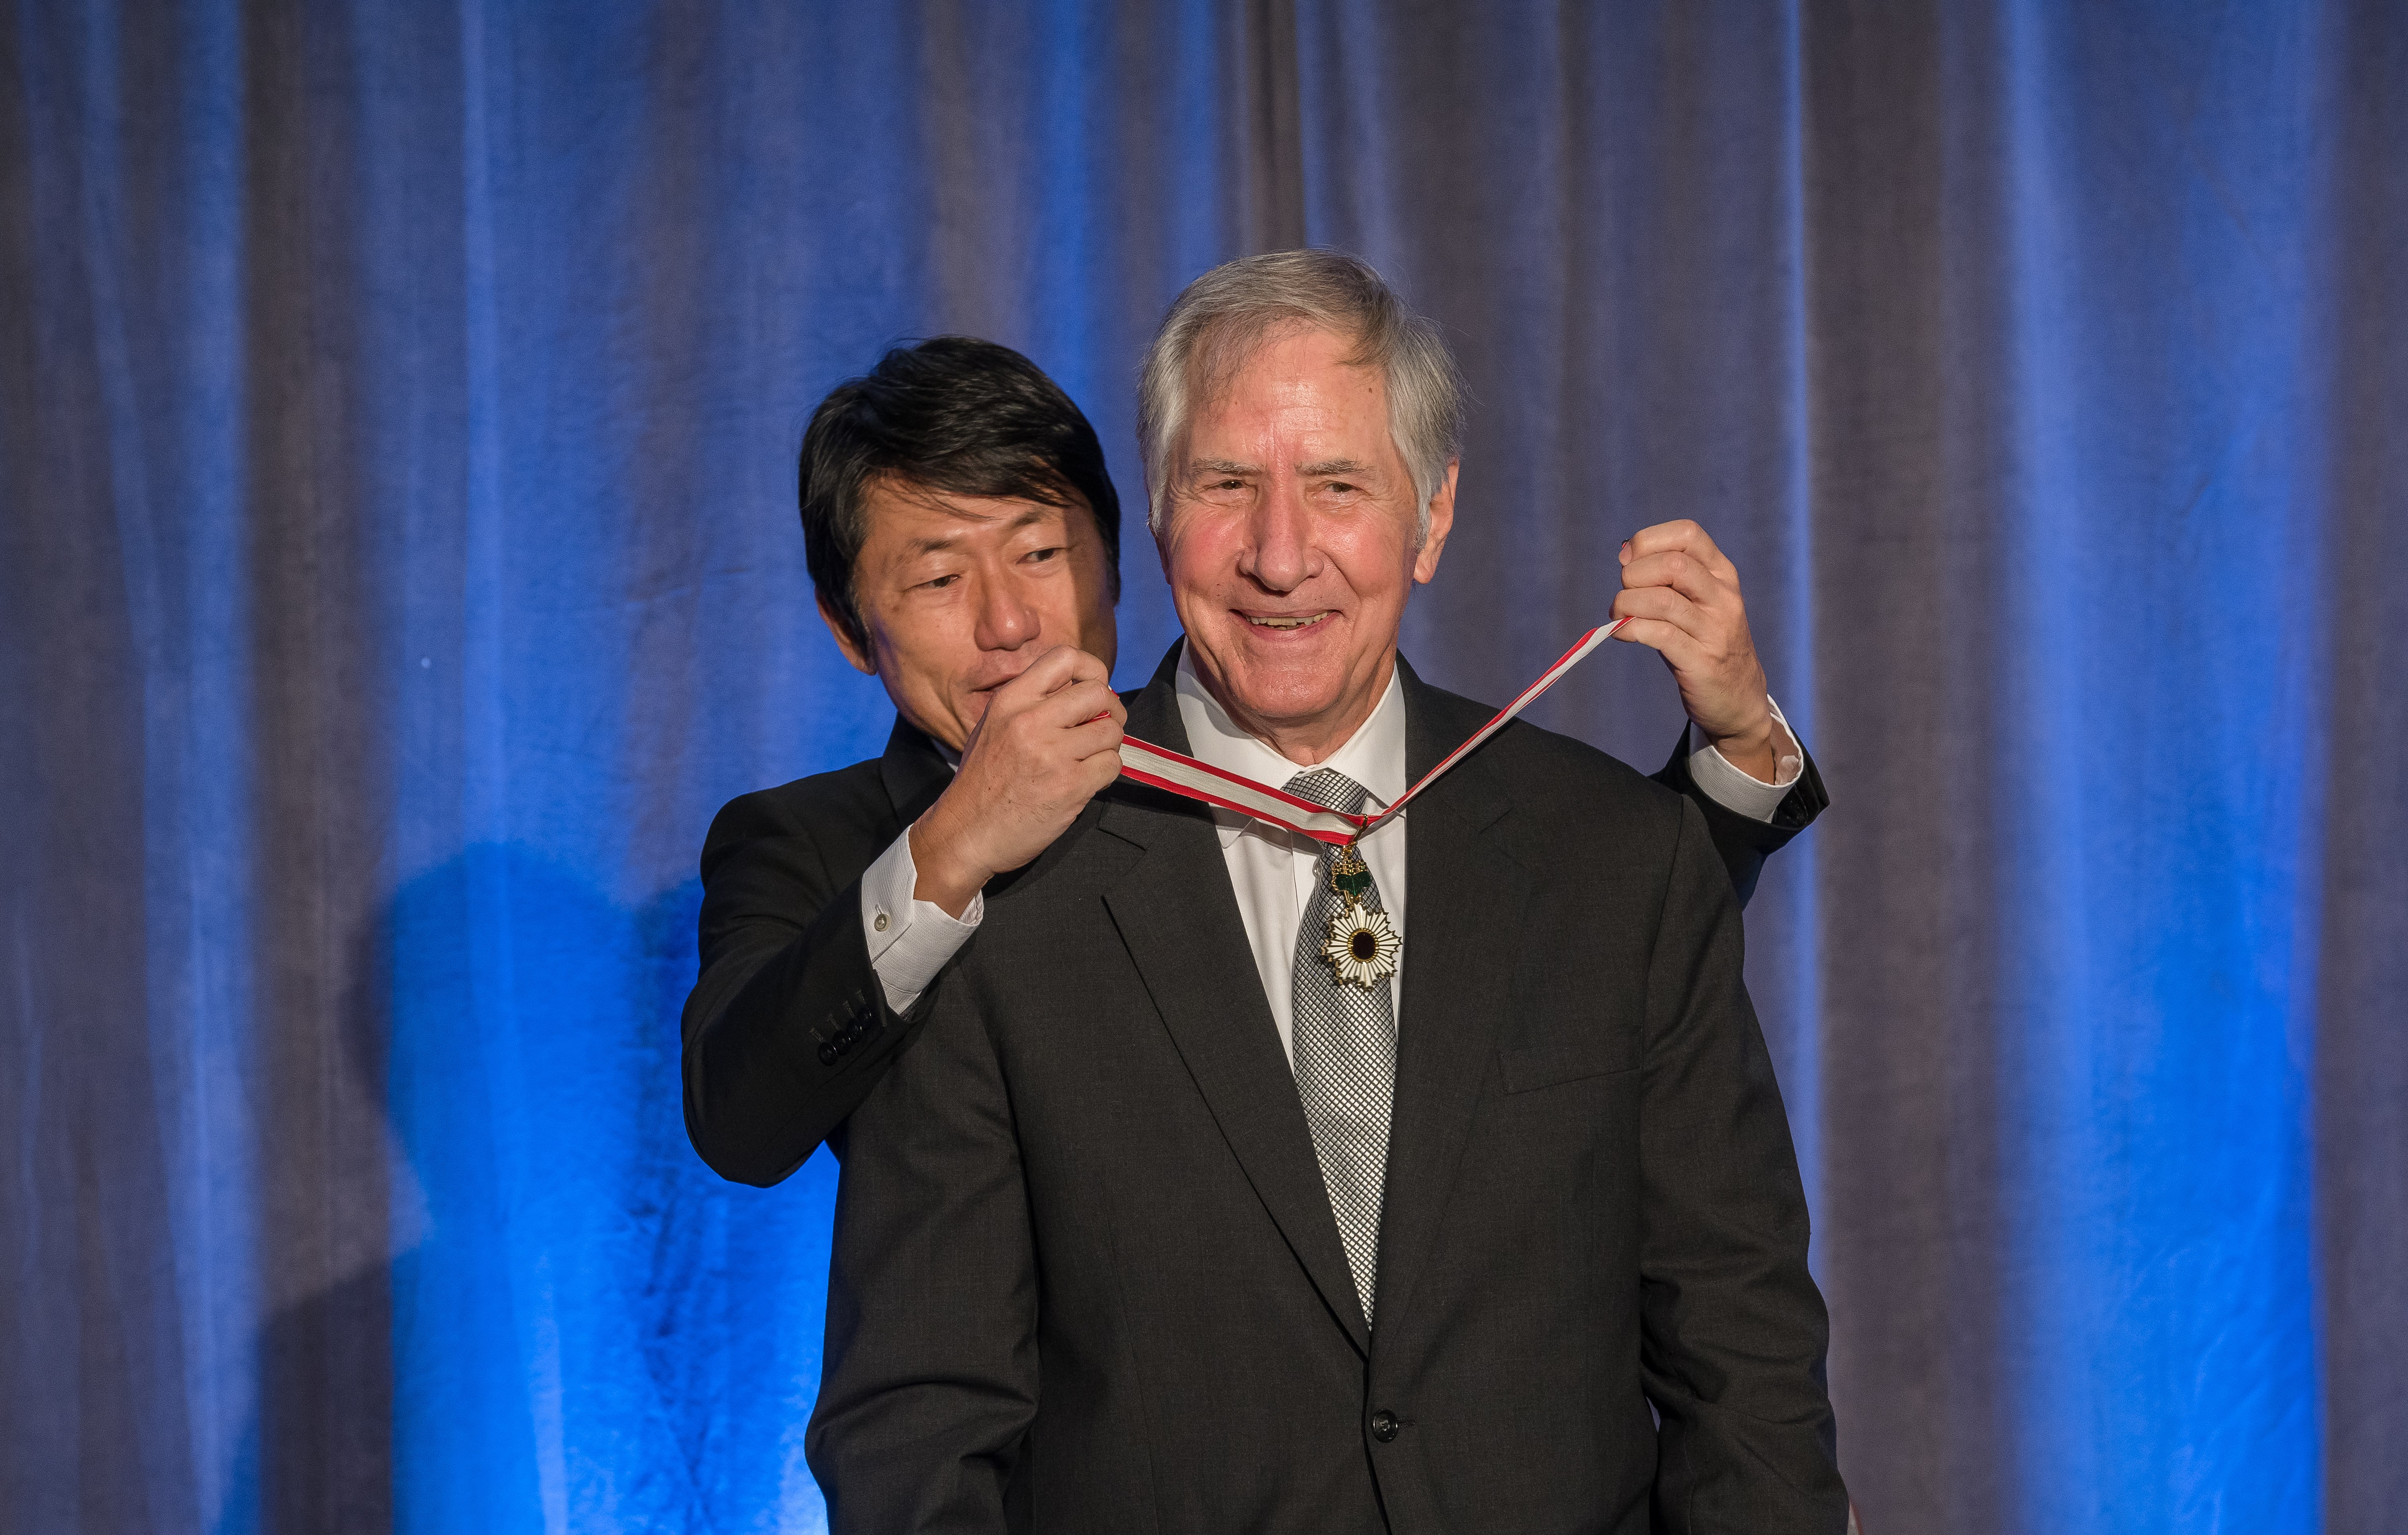 Long-time Honorary Consul-General Receives Order of the Rising Sun From Government of Japan